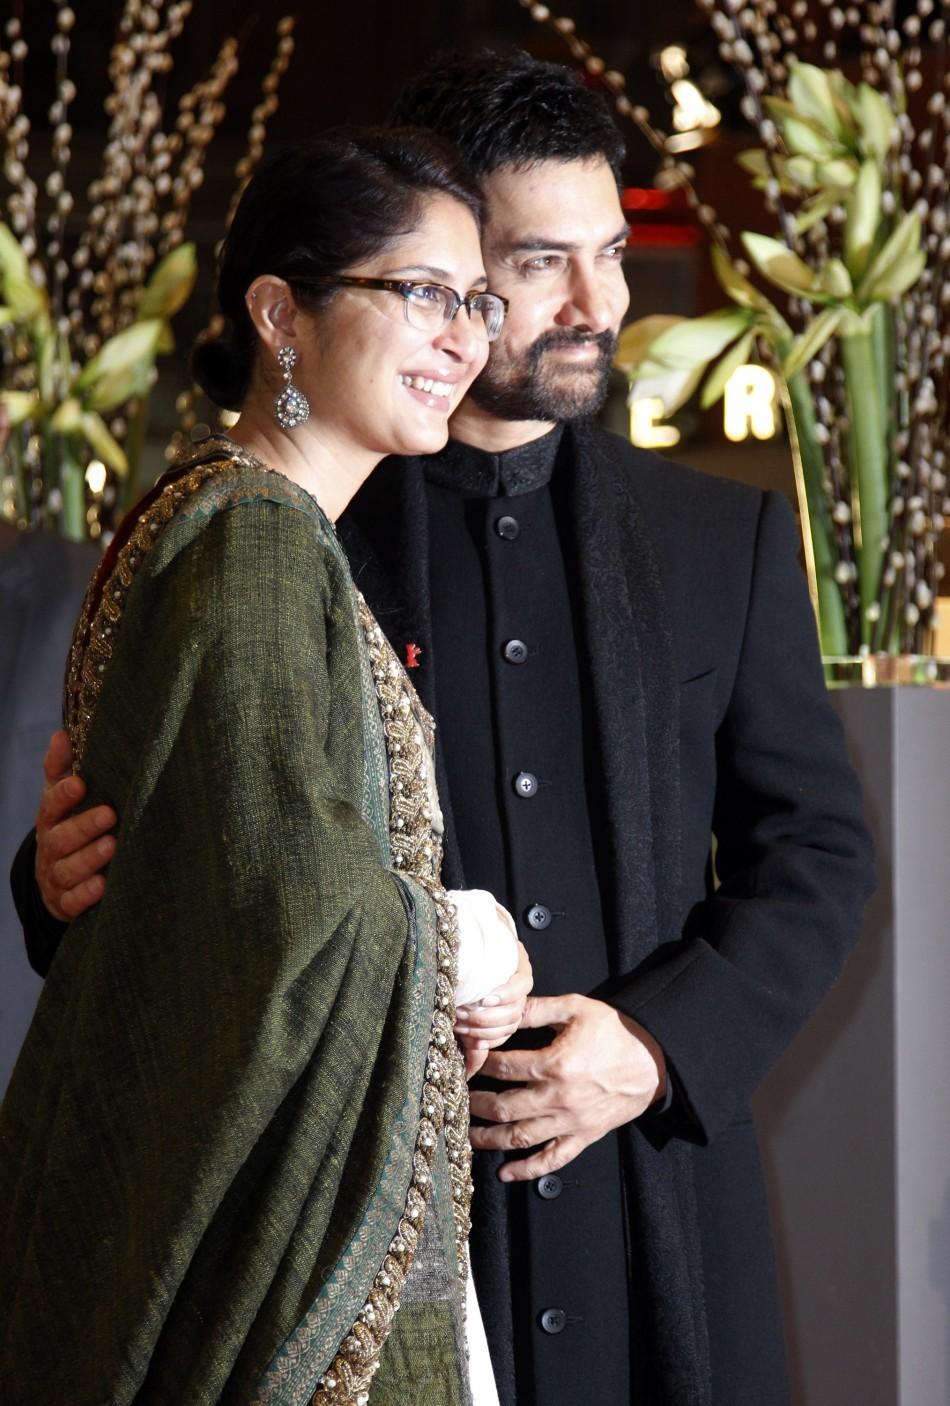 Bollywood actor Aamir Khan (R) and his wife Kiran Rao arrive at the red carpet for the opening U.S. movie 'True Grit' at the 61st Berlinale International Film Festival in Berlin February 10, 2011.